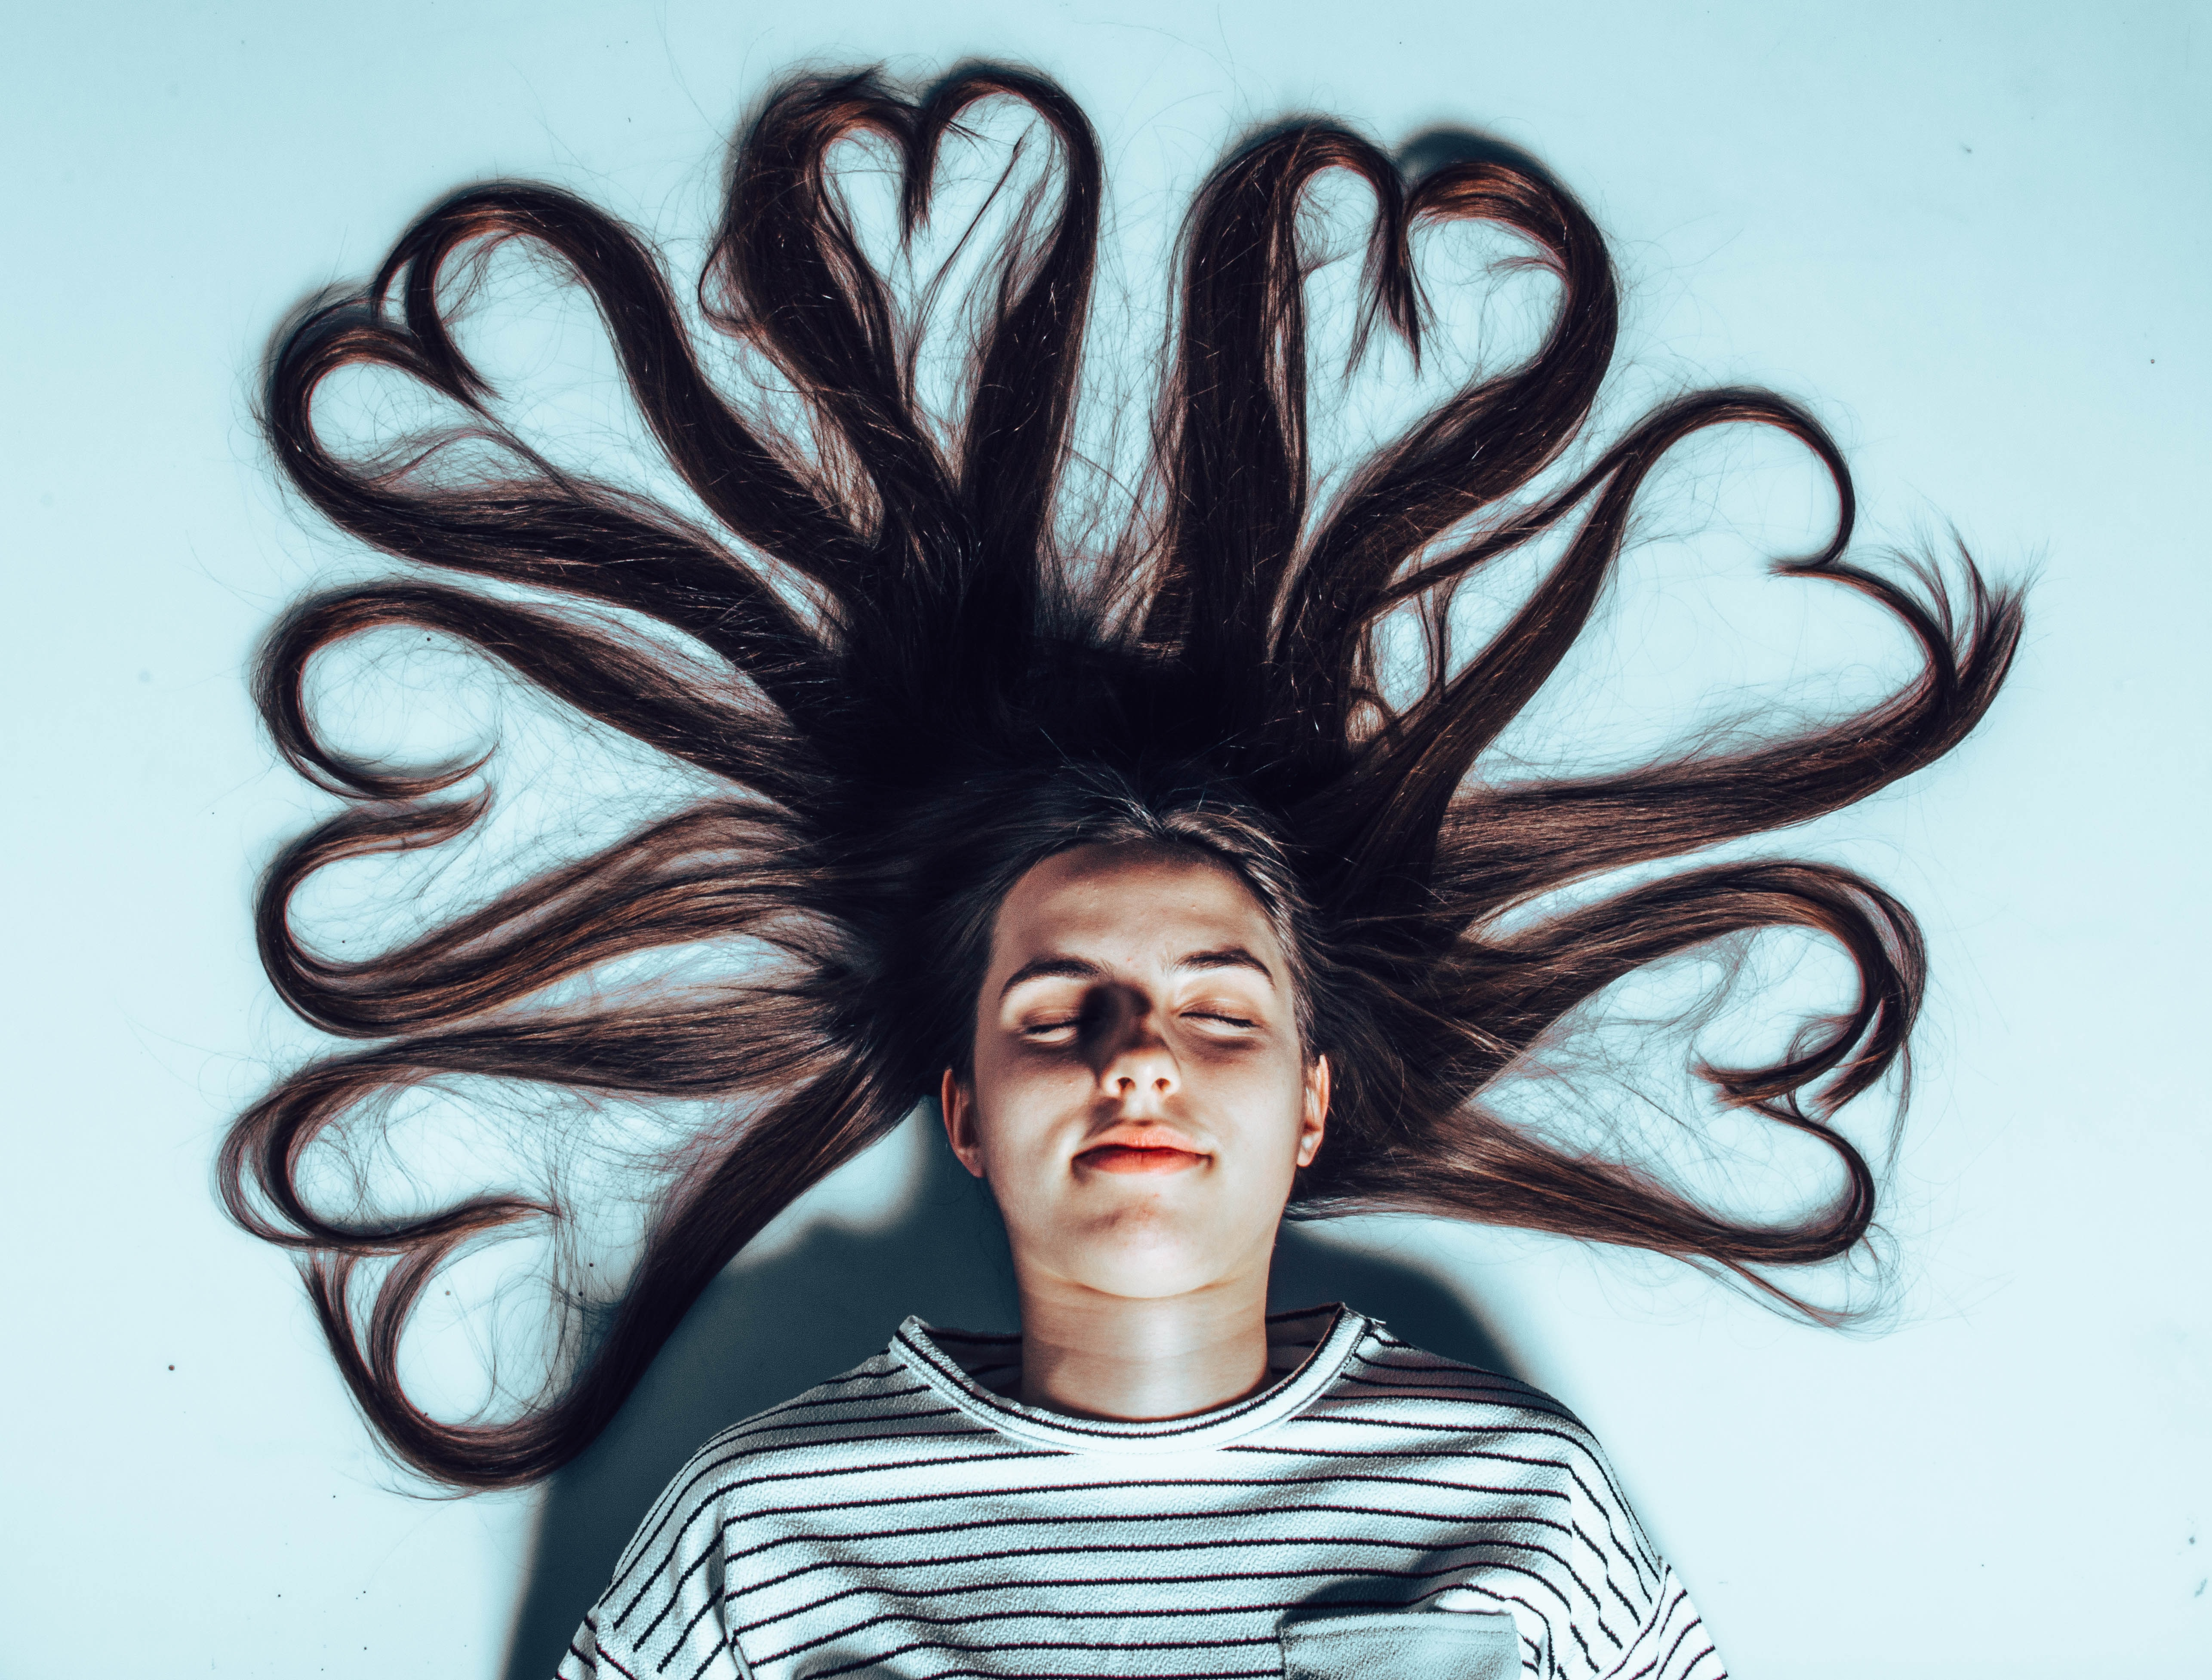 woman laying on white surface with heart forming hair